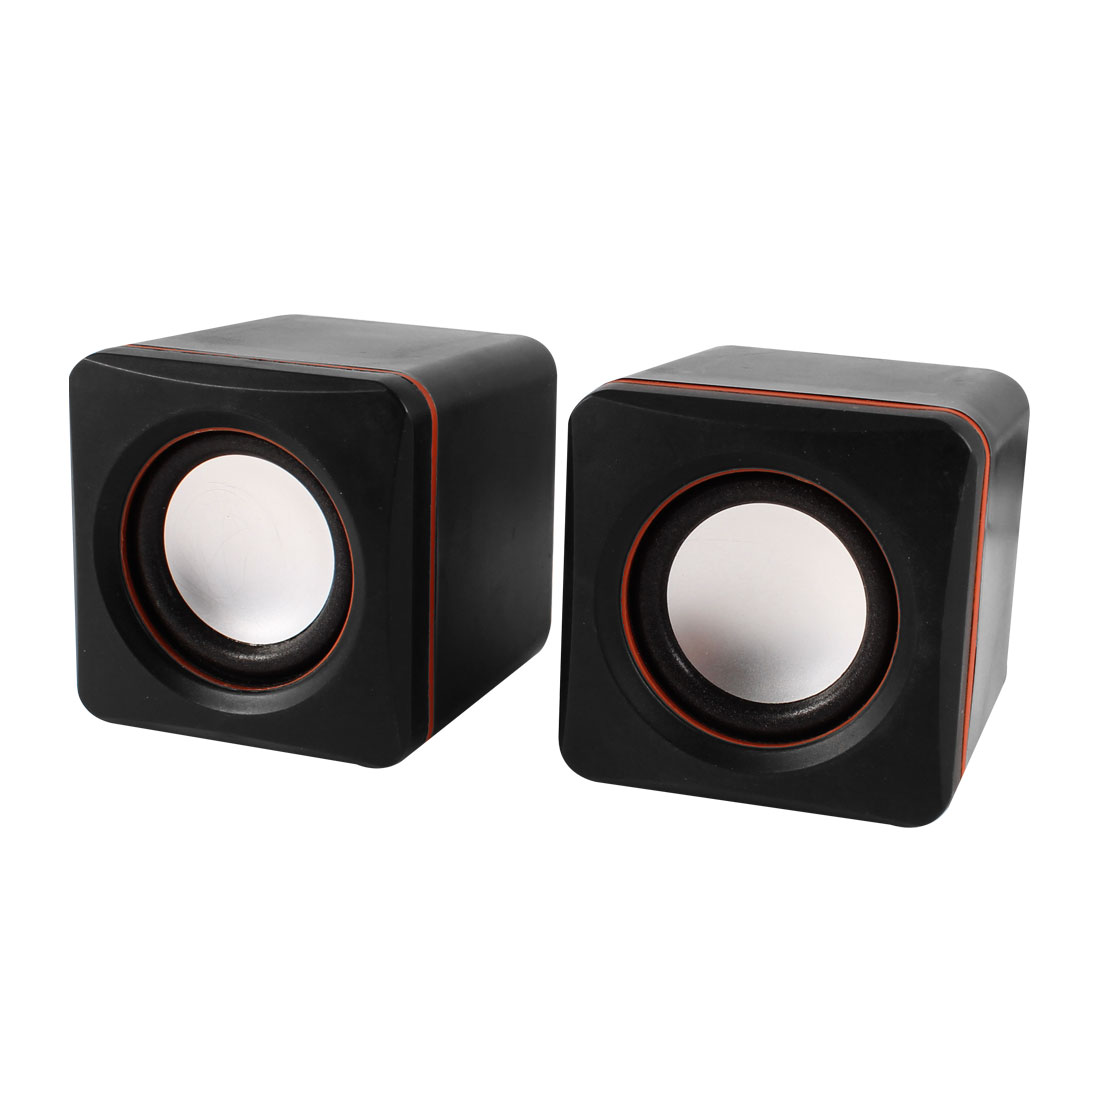 Black Volume Control 2.0 Channel USB  Cube Speaker Stereo Sound Box Pair